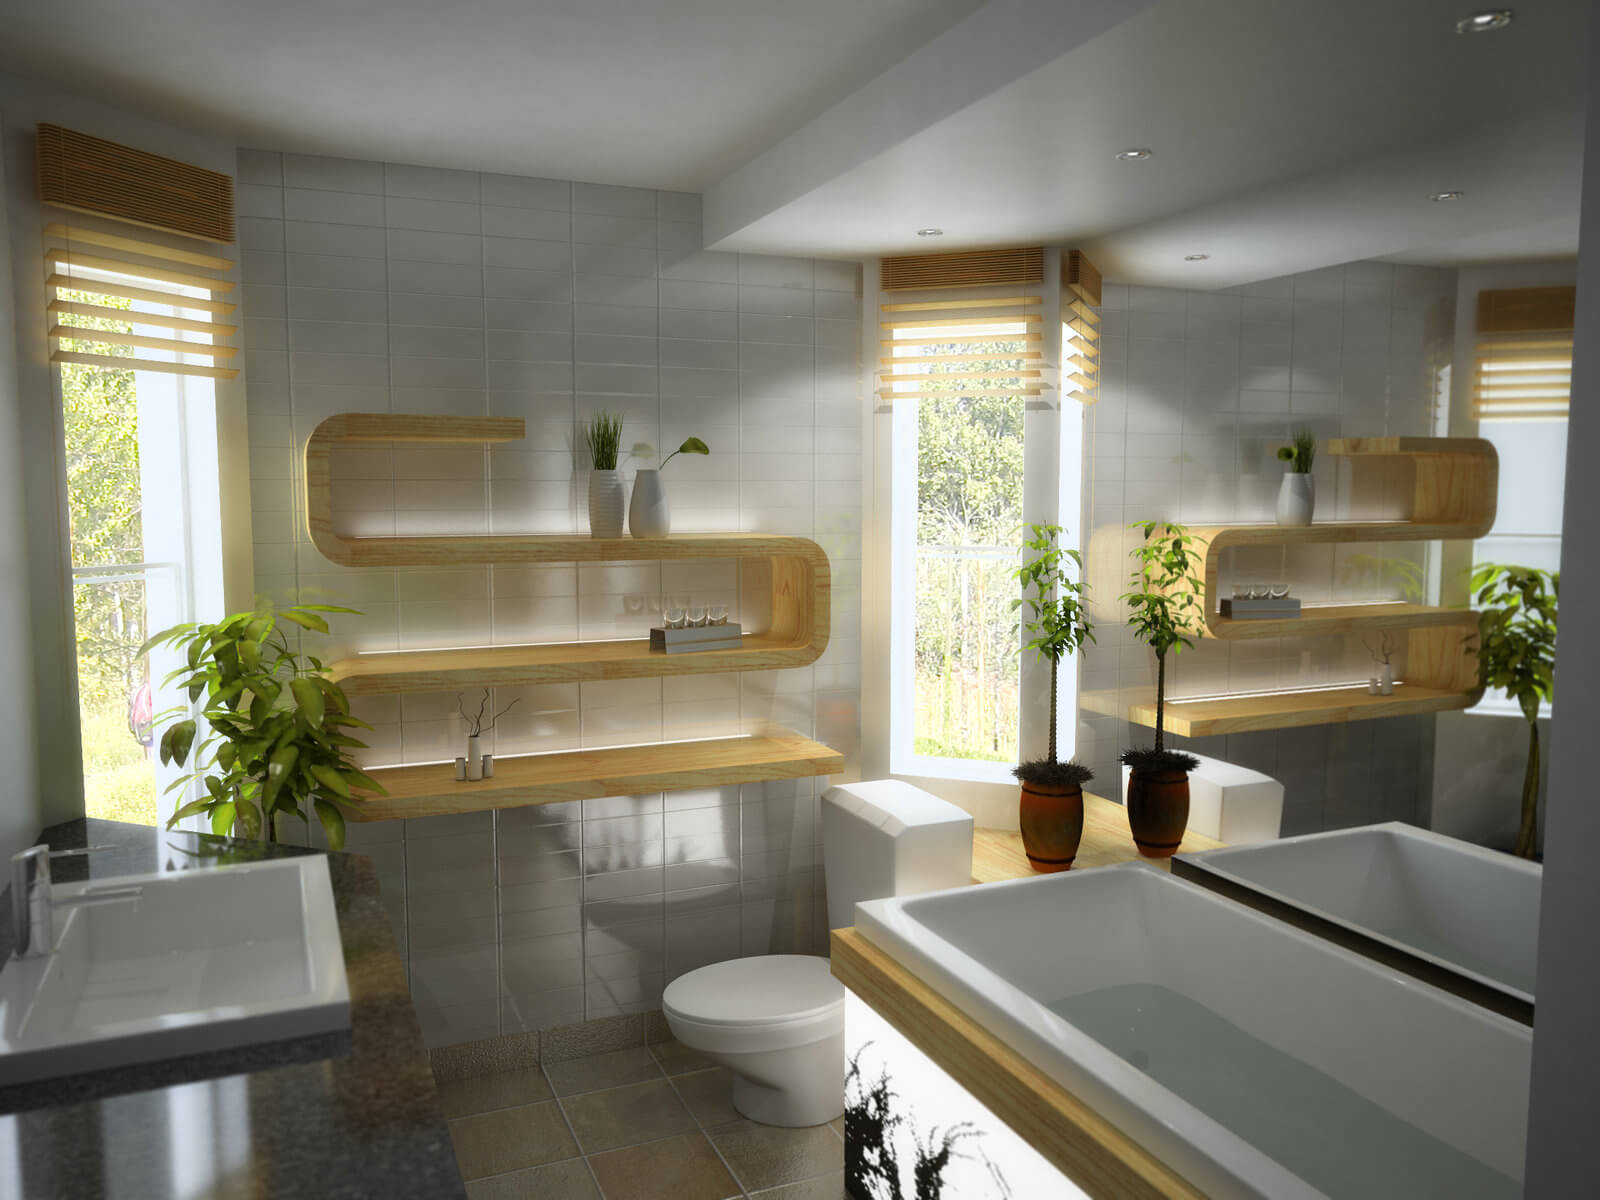 20 Examples of Innovative Bathroom Designs